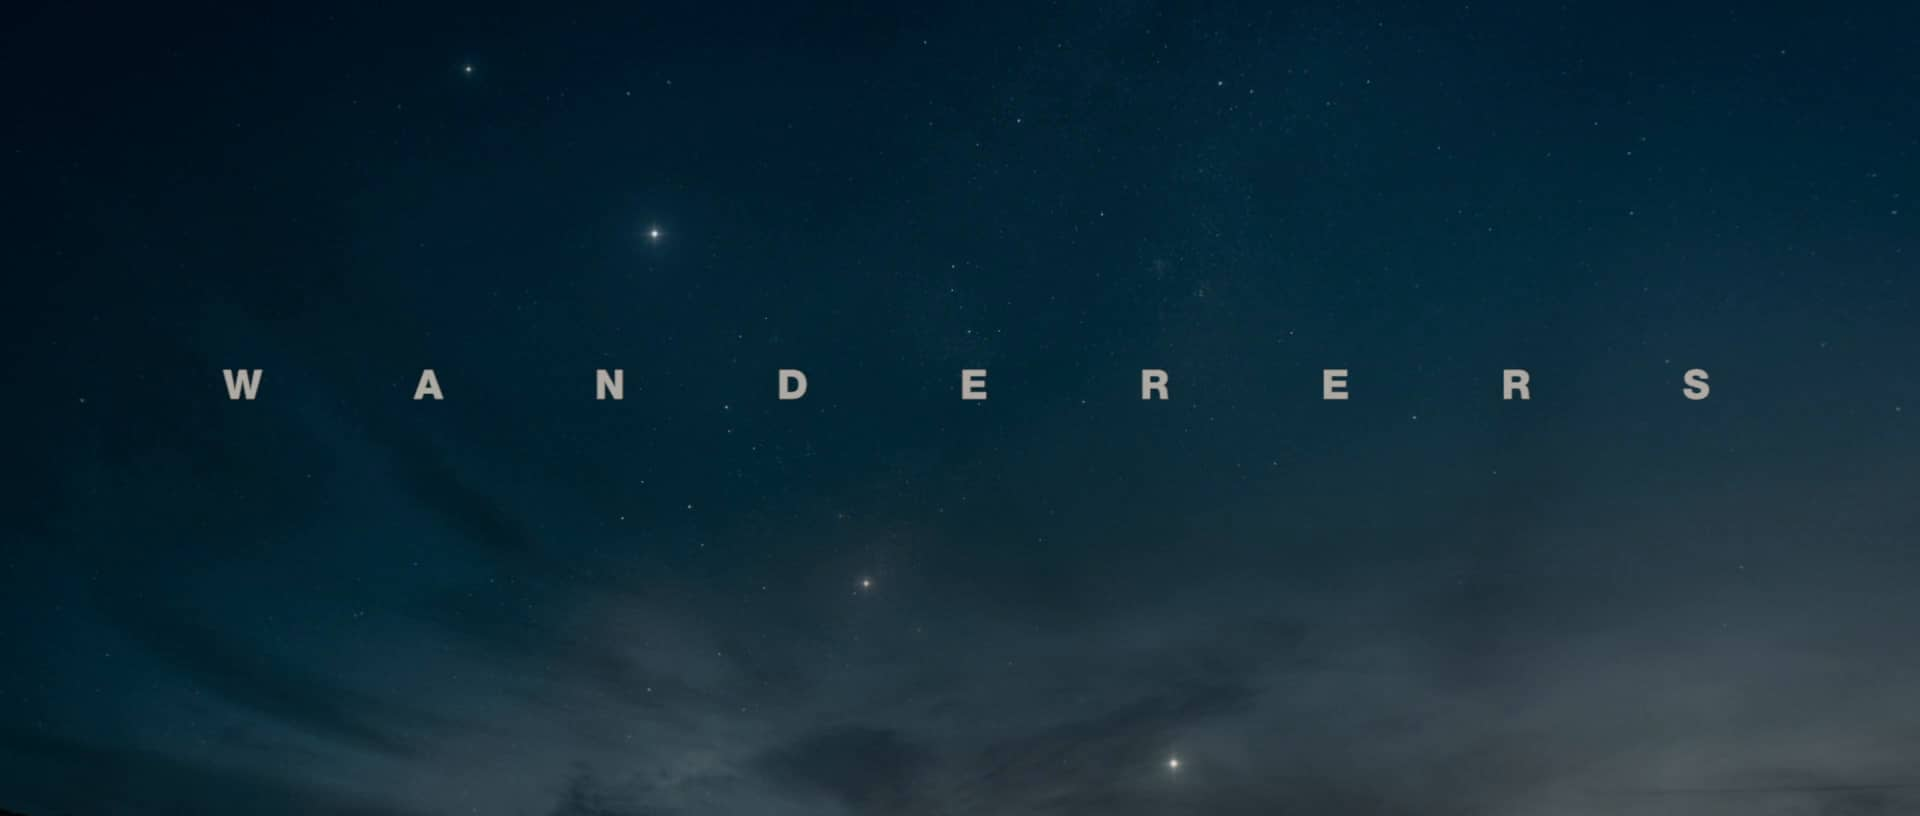 Nice wallpapers Wanderers 1920x816px